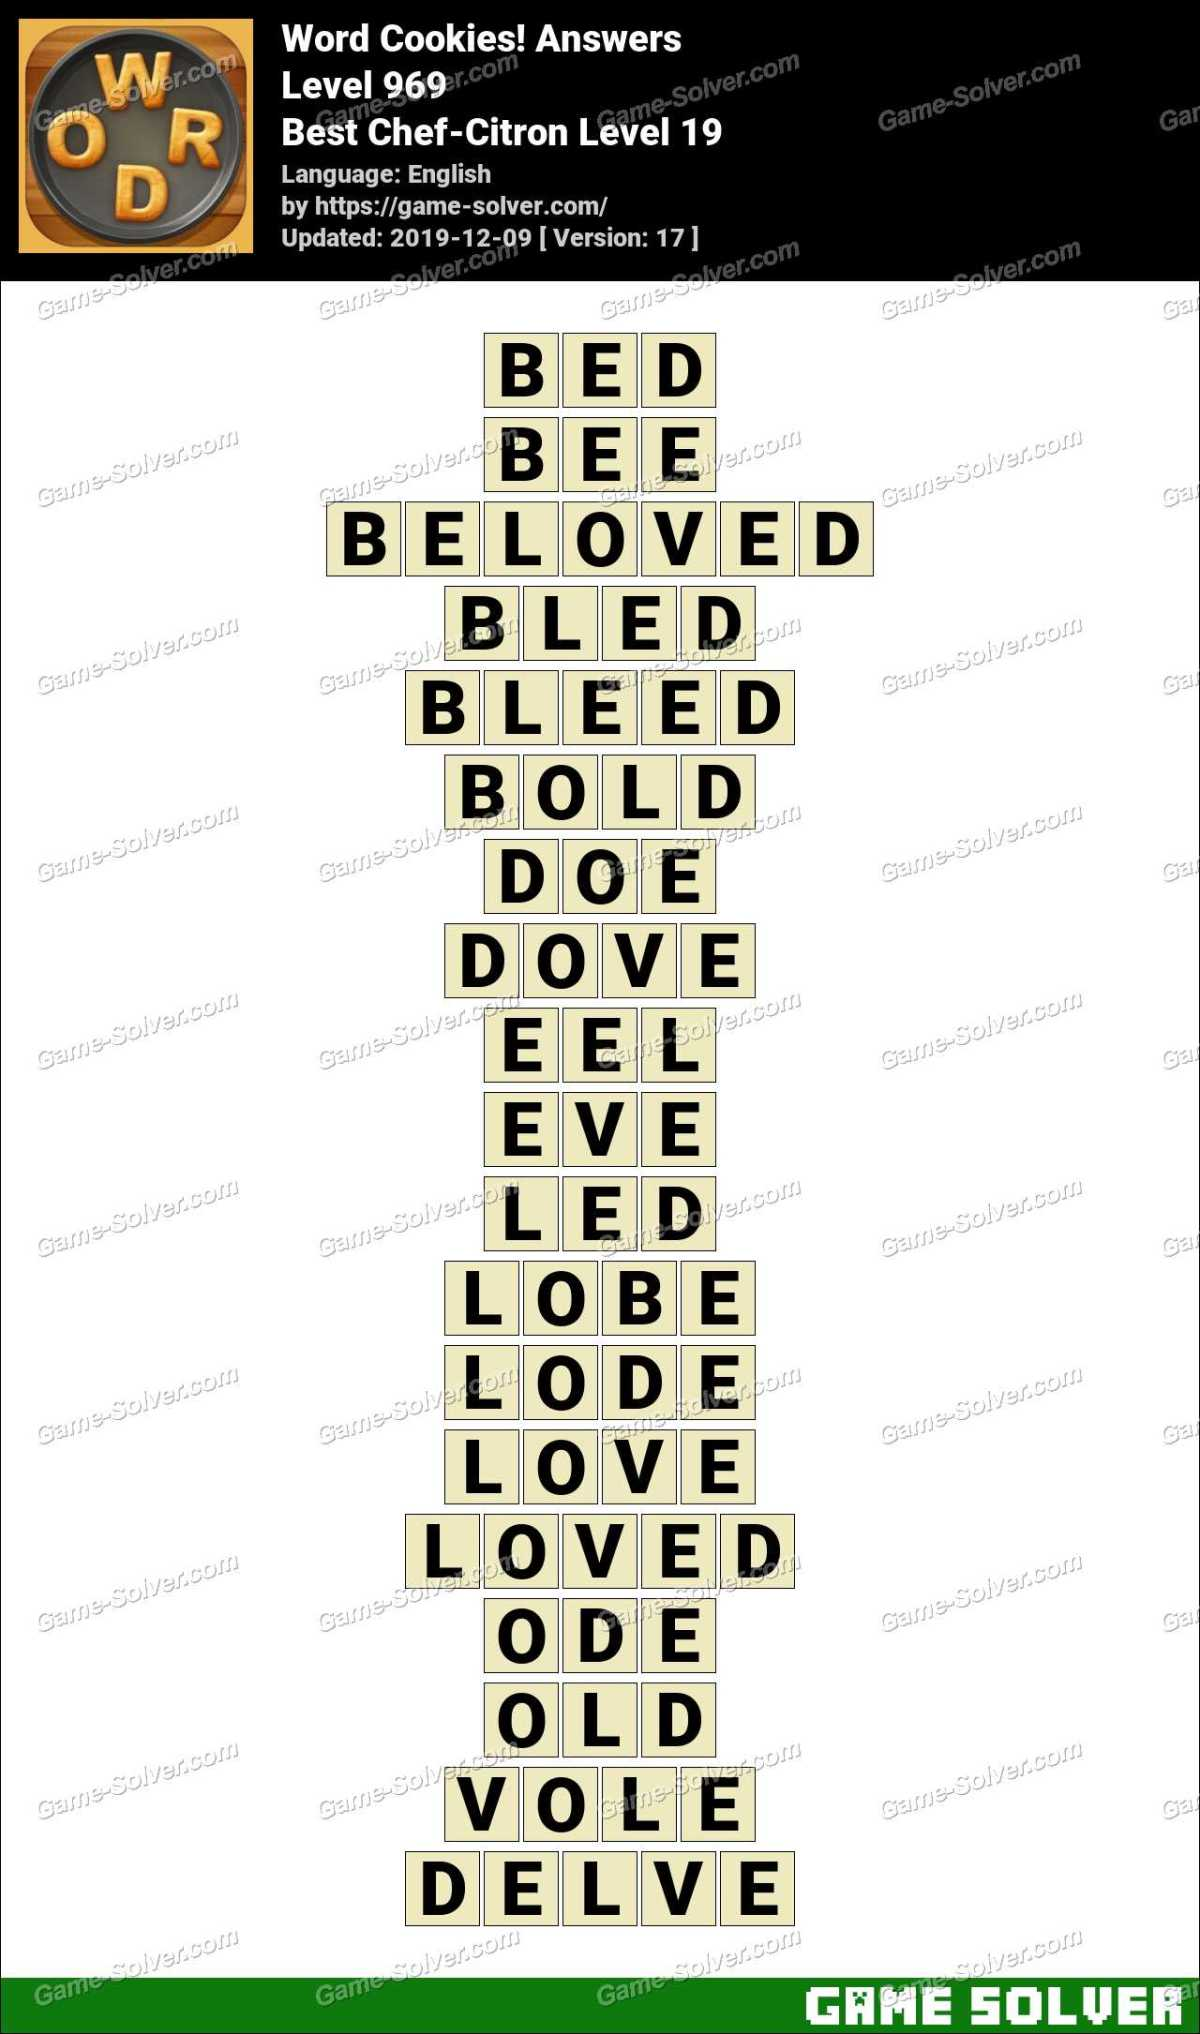 Word Cookies Best Chef-Citron Level 19 Answers